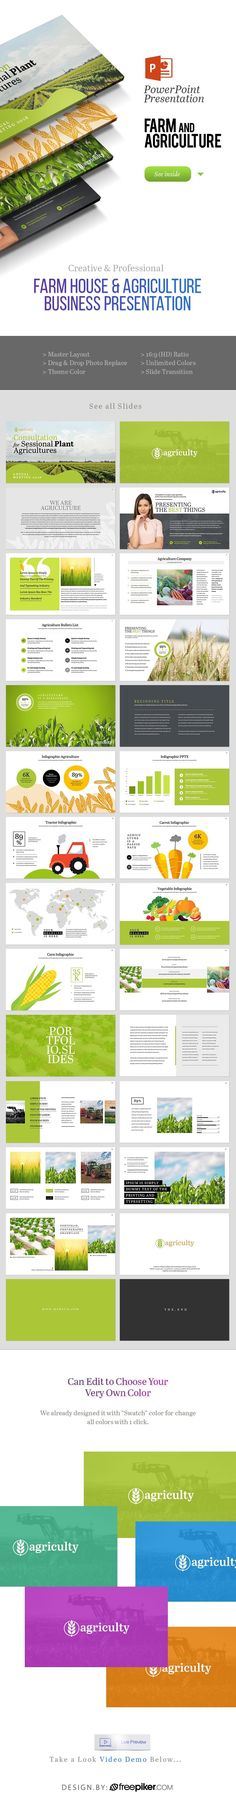 Agriculture Powerpoint Presentation by PantonStudio Powerpoint Icon, Powerpoint Charts, Powerpoint Template Free, Business Powerpoint Templates, Keynote Template, Agriculture, Presentation Design, Brochure Design, Business Design